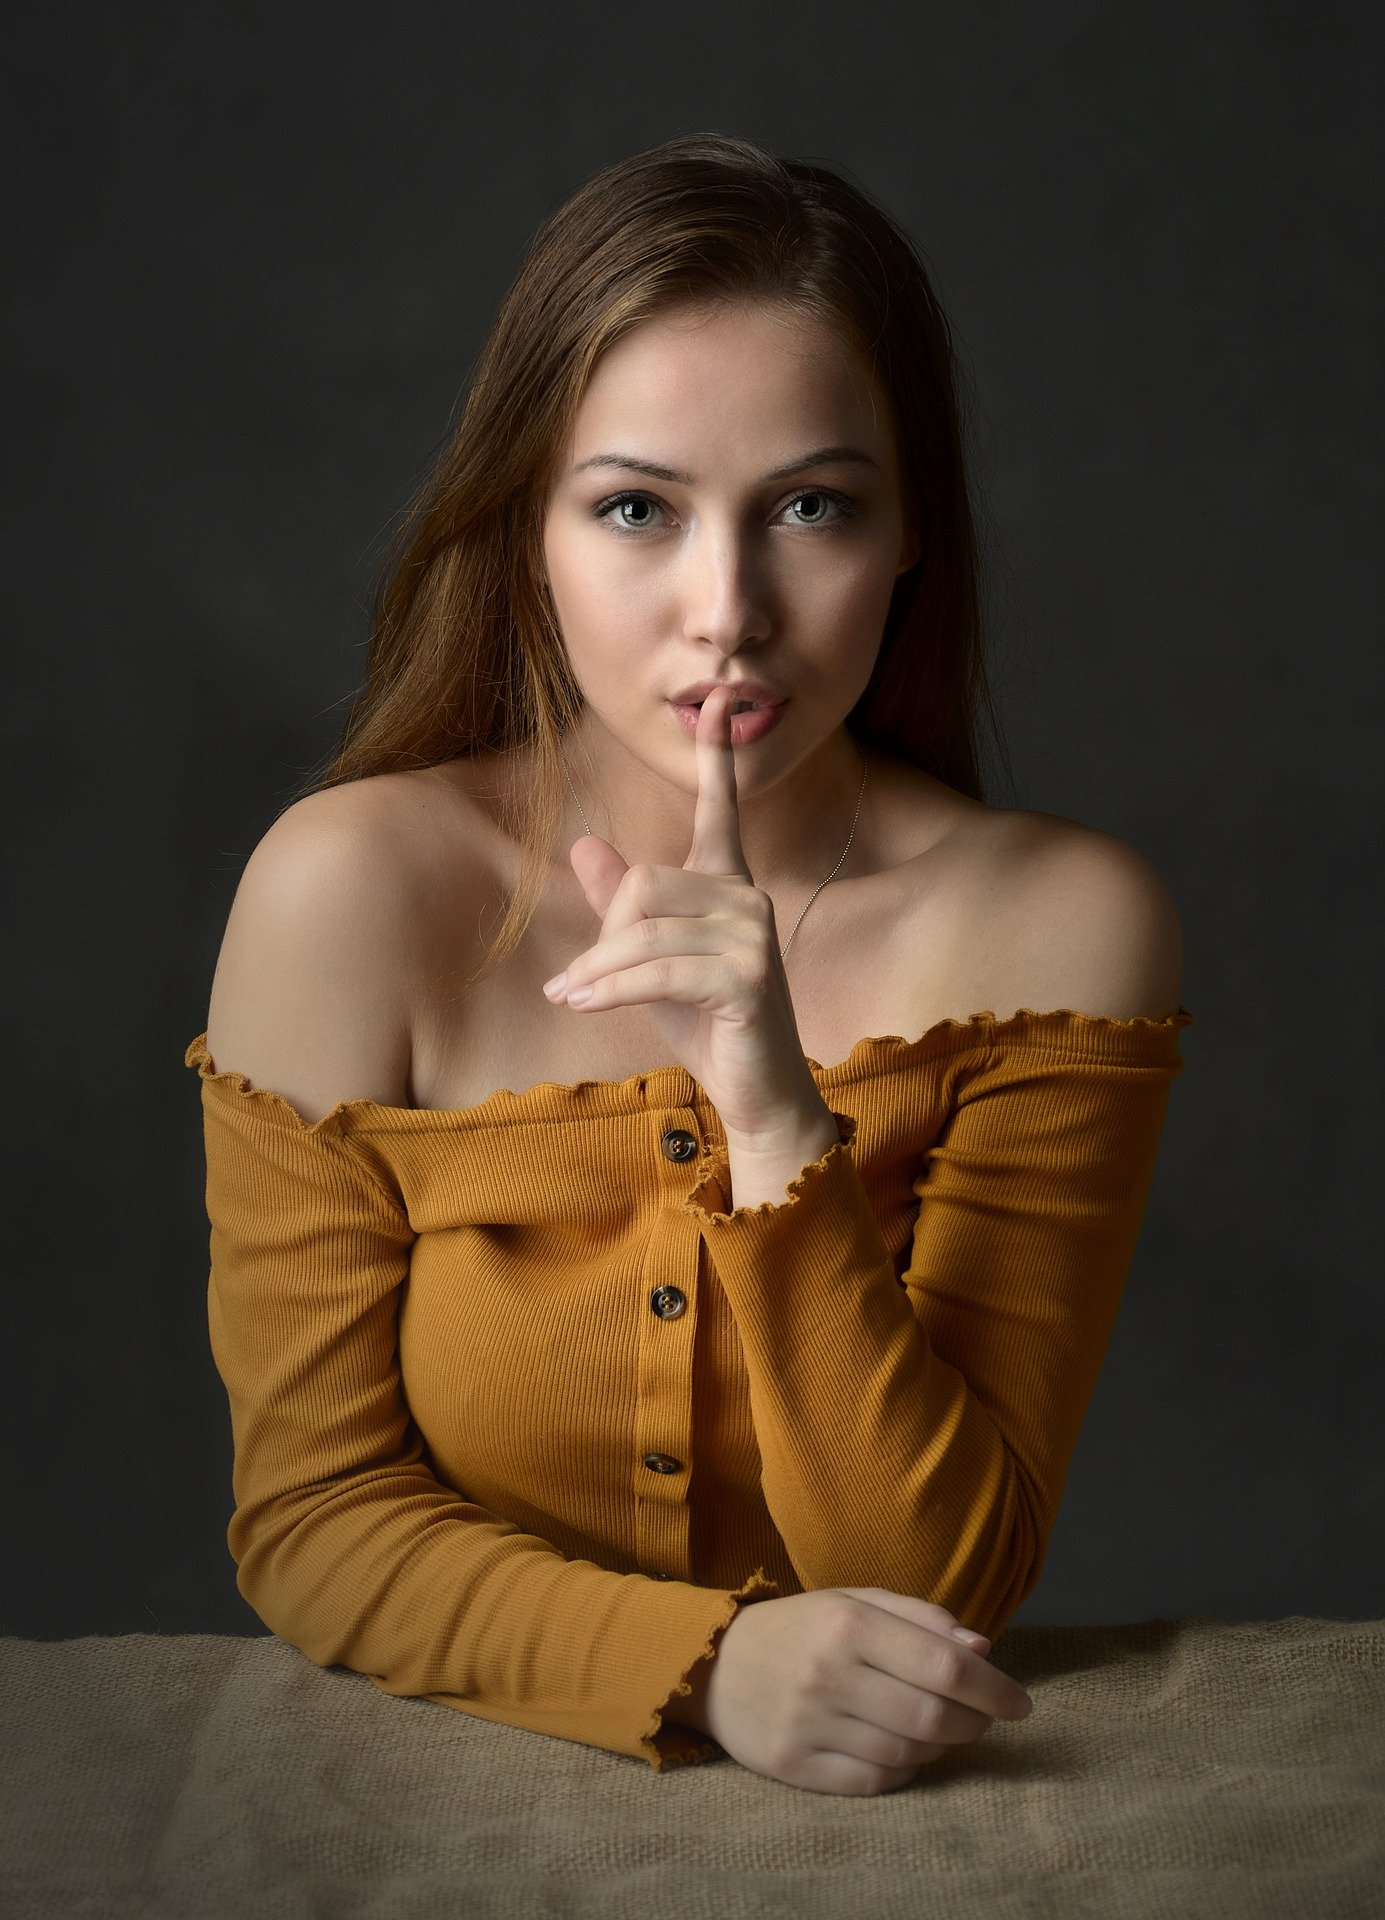 A young woman declines to share information.   Photo: Pixabay.